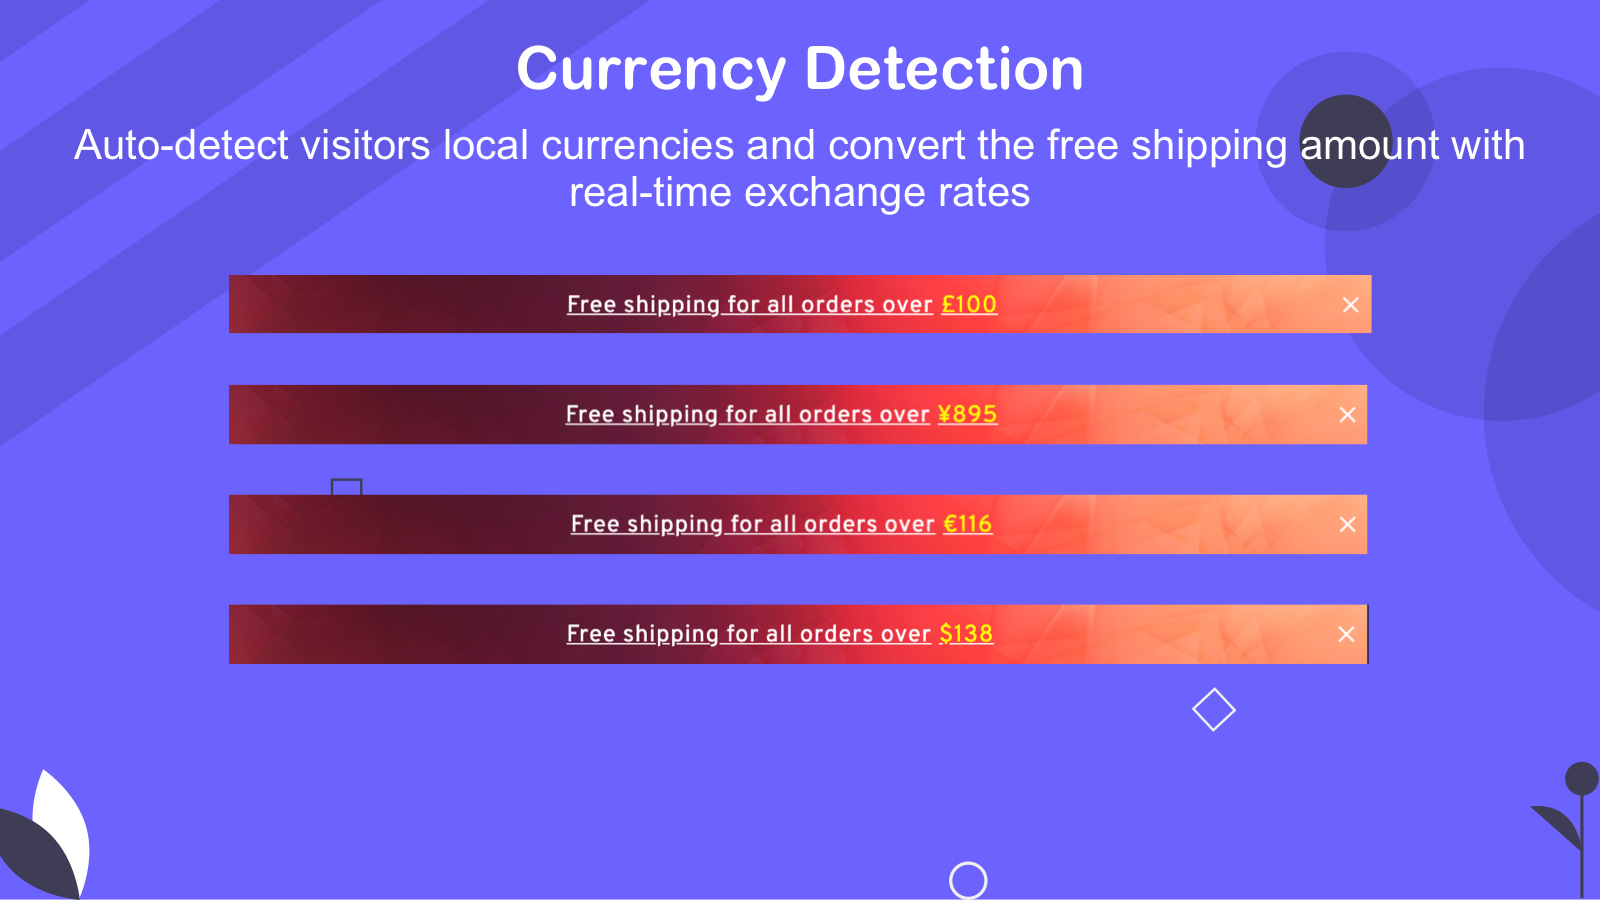 Currency Detection